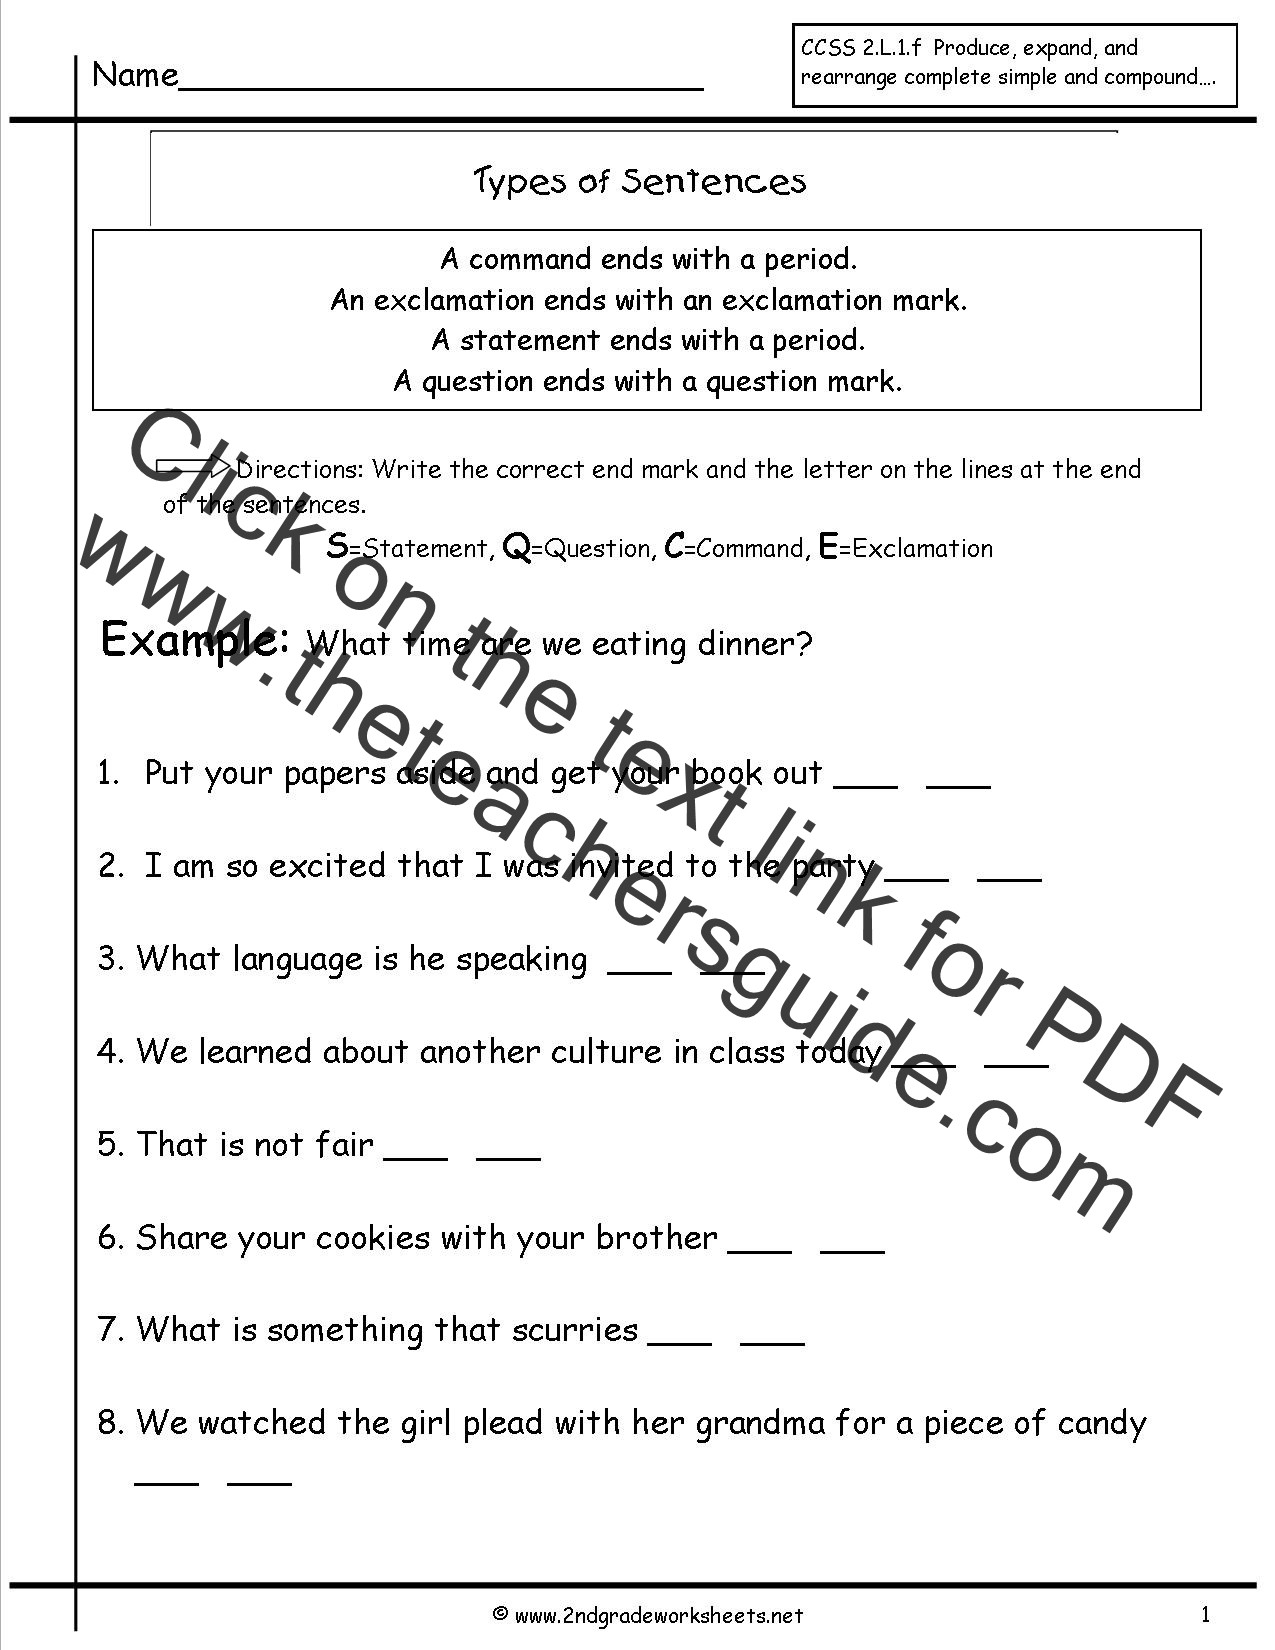 2nd Grade Editing Worksheets Second Grade Sentences Worksheets Ccss 2 L 1 F Worksheets